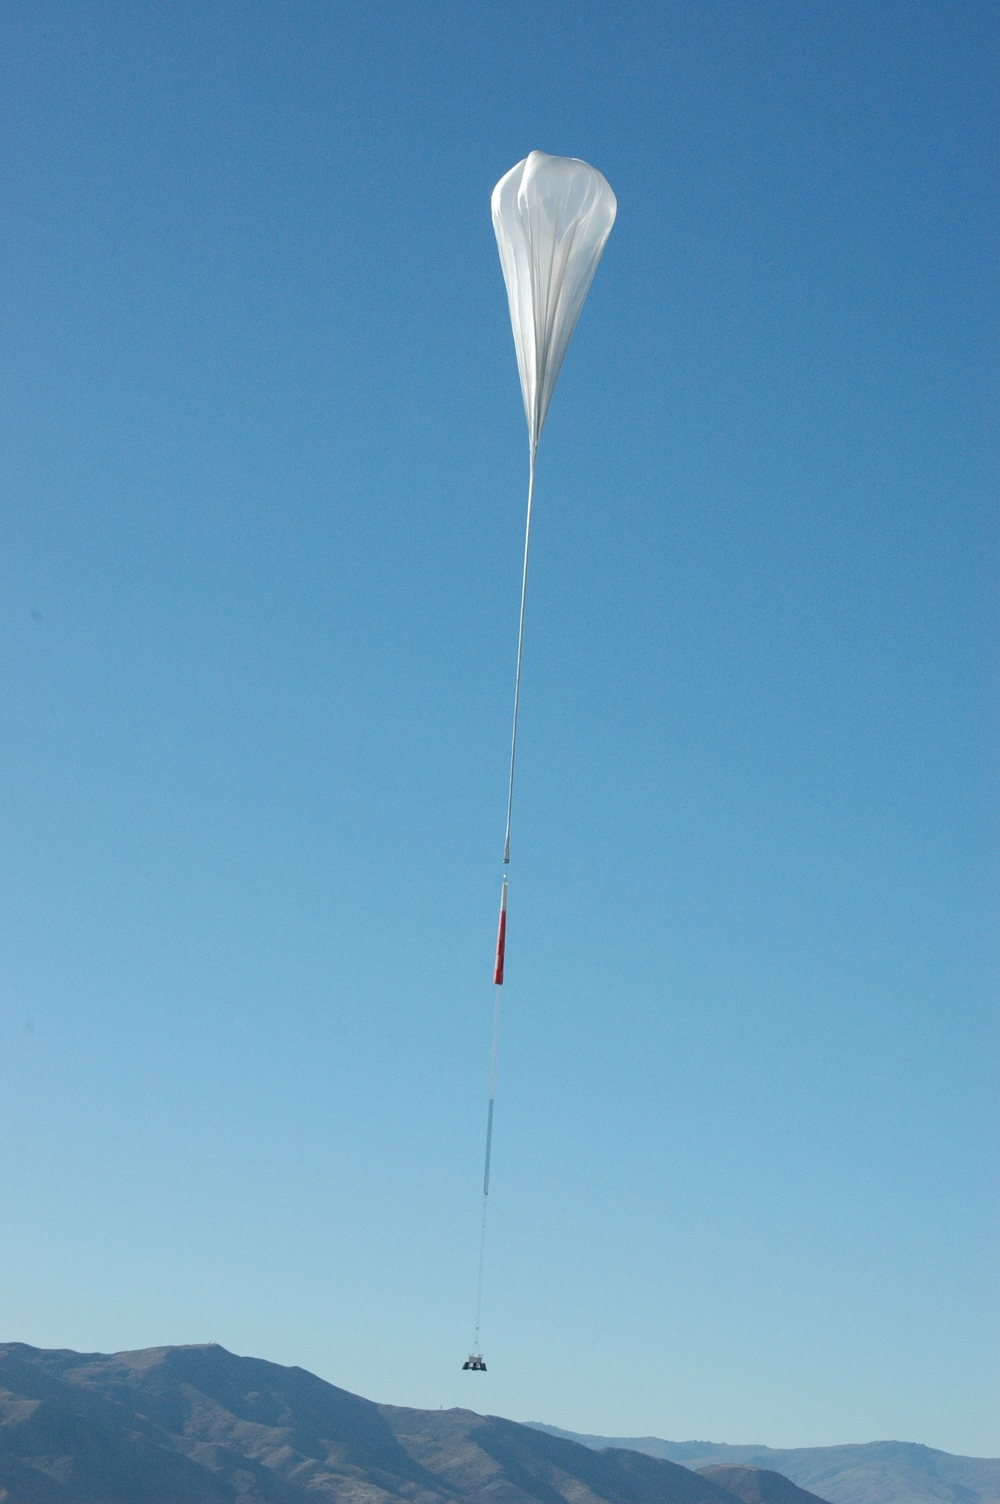 A NASA Super Pressure Balloon takes flight from Wanaka, New Zealand, in 2015. When fully inflated, the 18.8 million-cubic-foot (532,000 cubic meter) balloon is as large as a football stadium. During this year's New Zealand campaign, the balloon will carry the University of California, Berkeley's Compton Spectrometer and Imager (COSI) payload. - Image   Credits: NASA